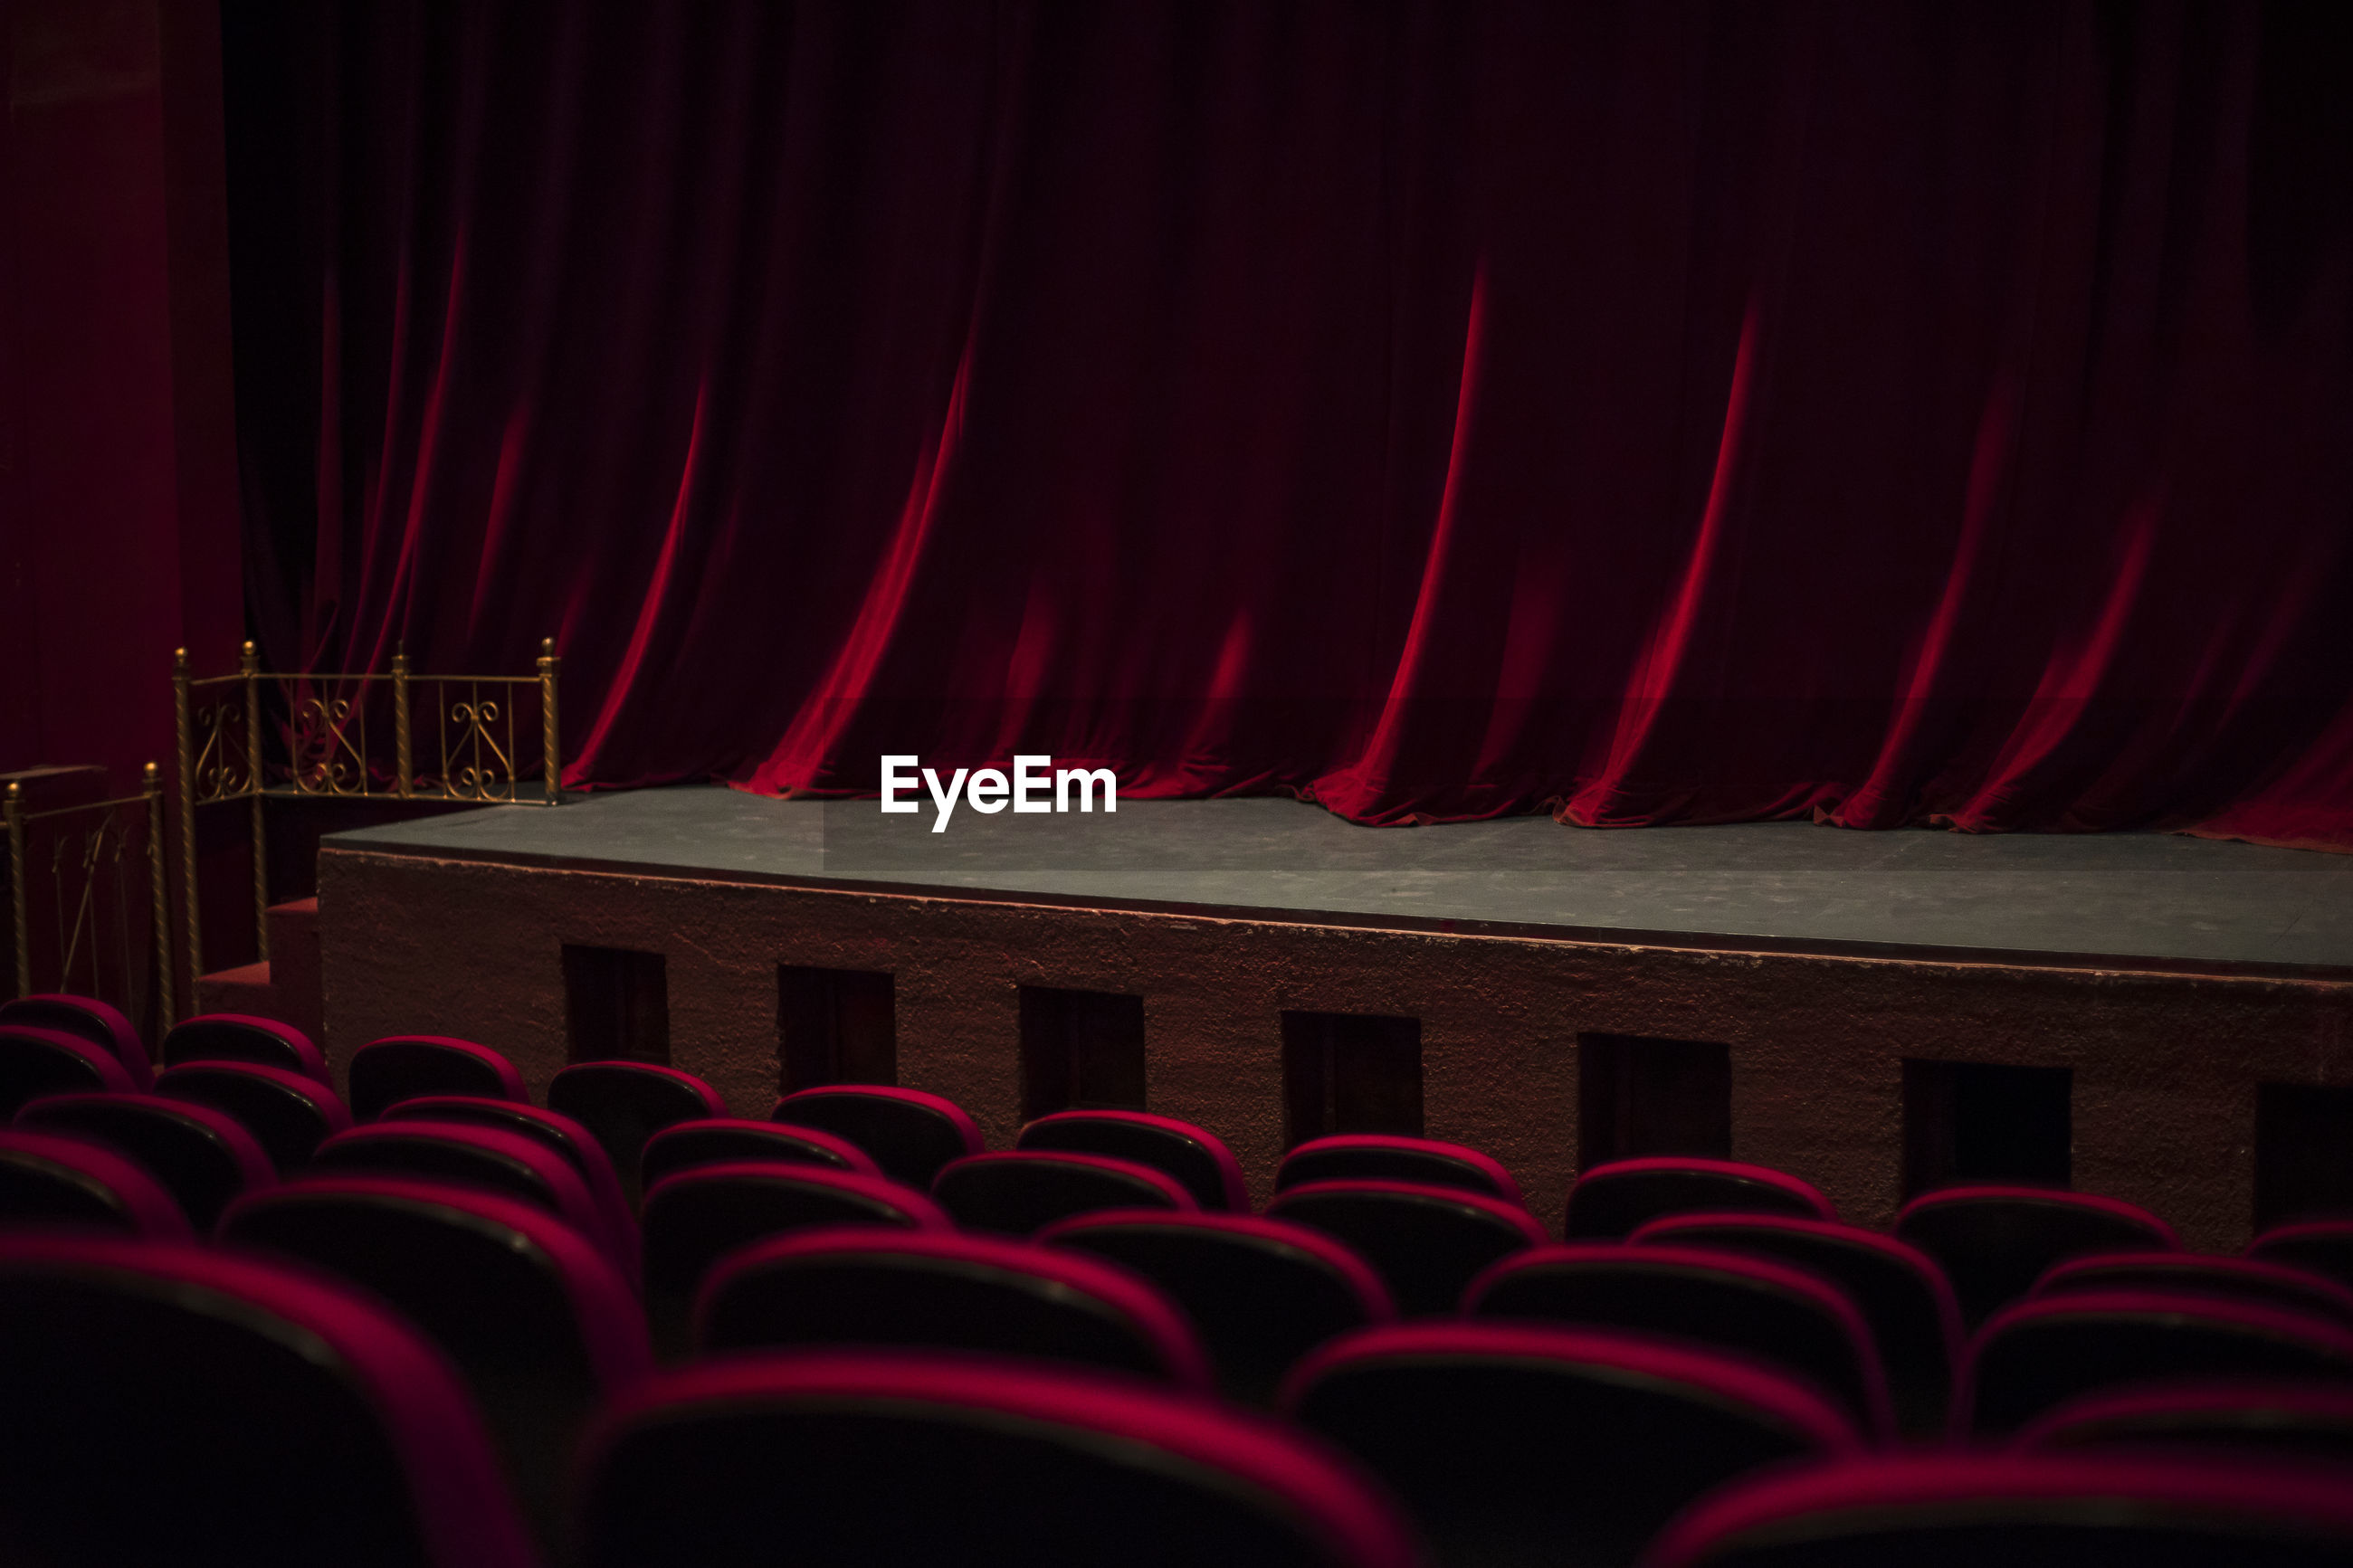 View of chairs at theater